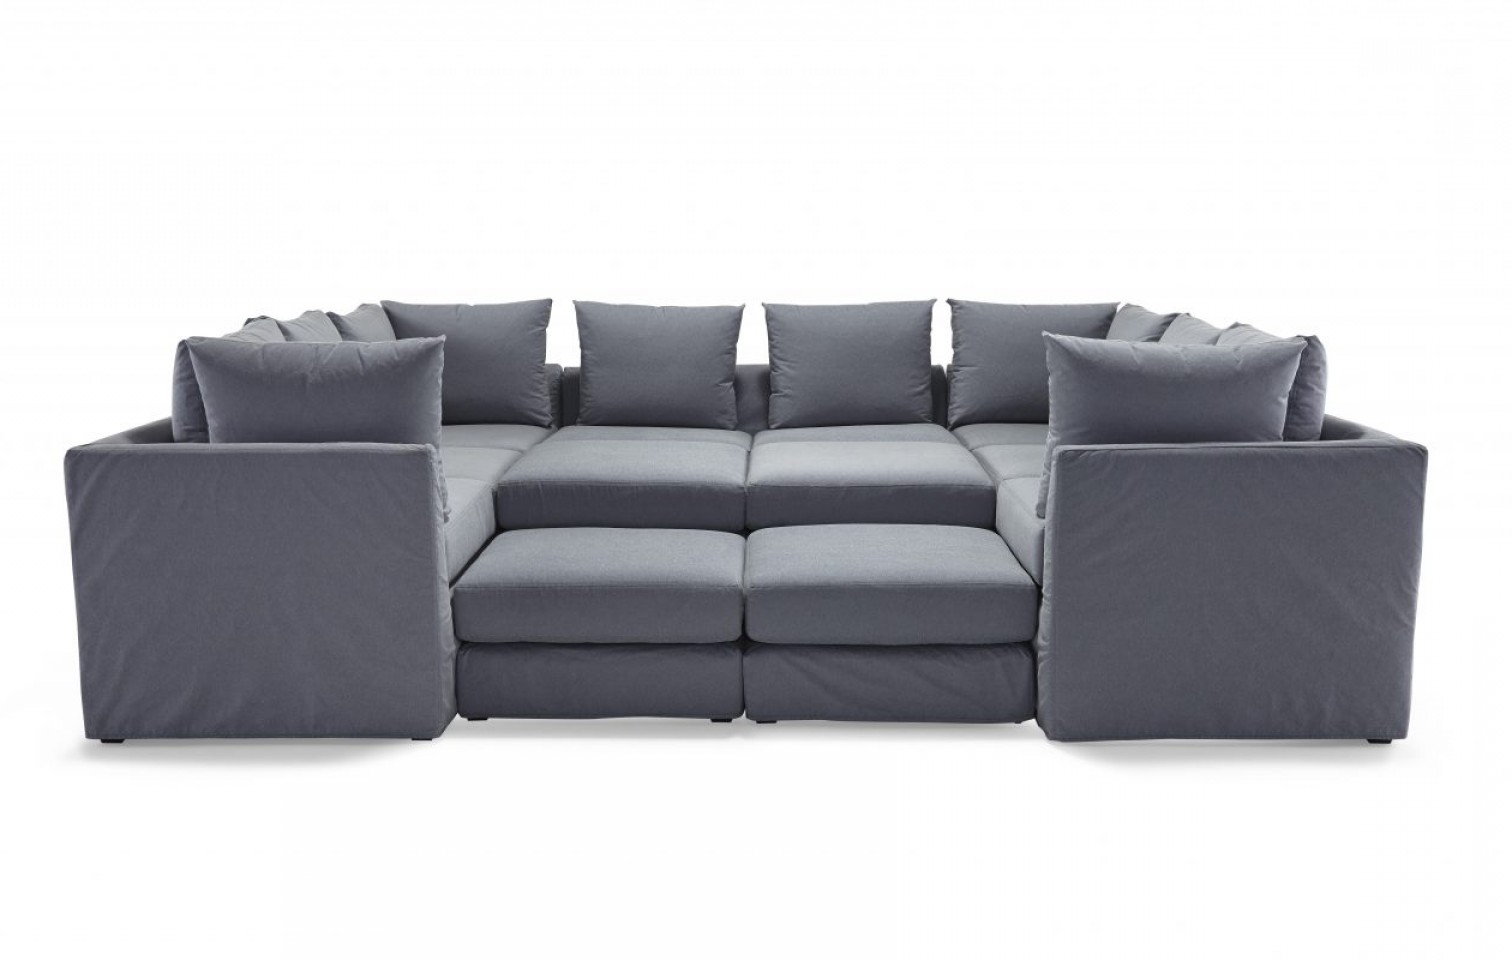 Back Of The Couch Vector: Take A Seat Some Say The Conversation Pit Is Coming Back